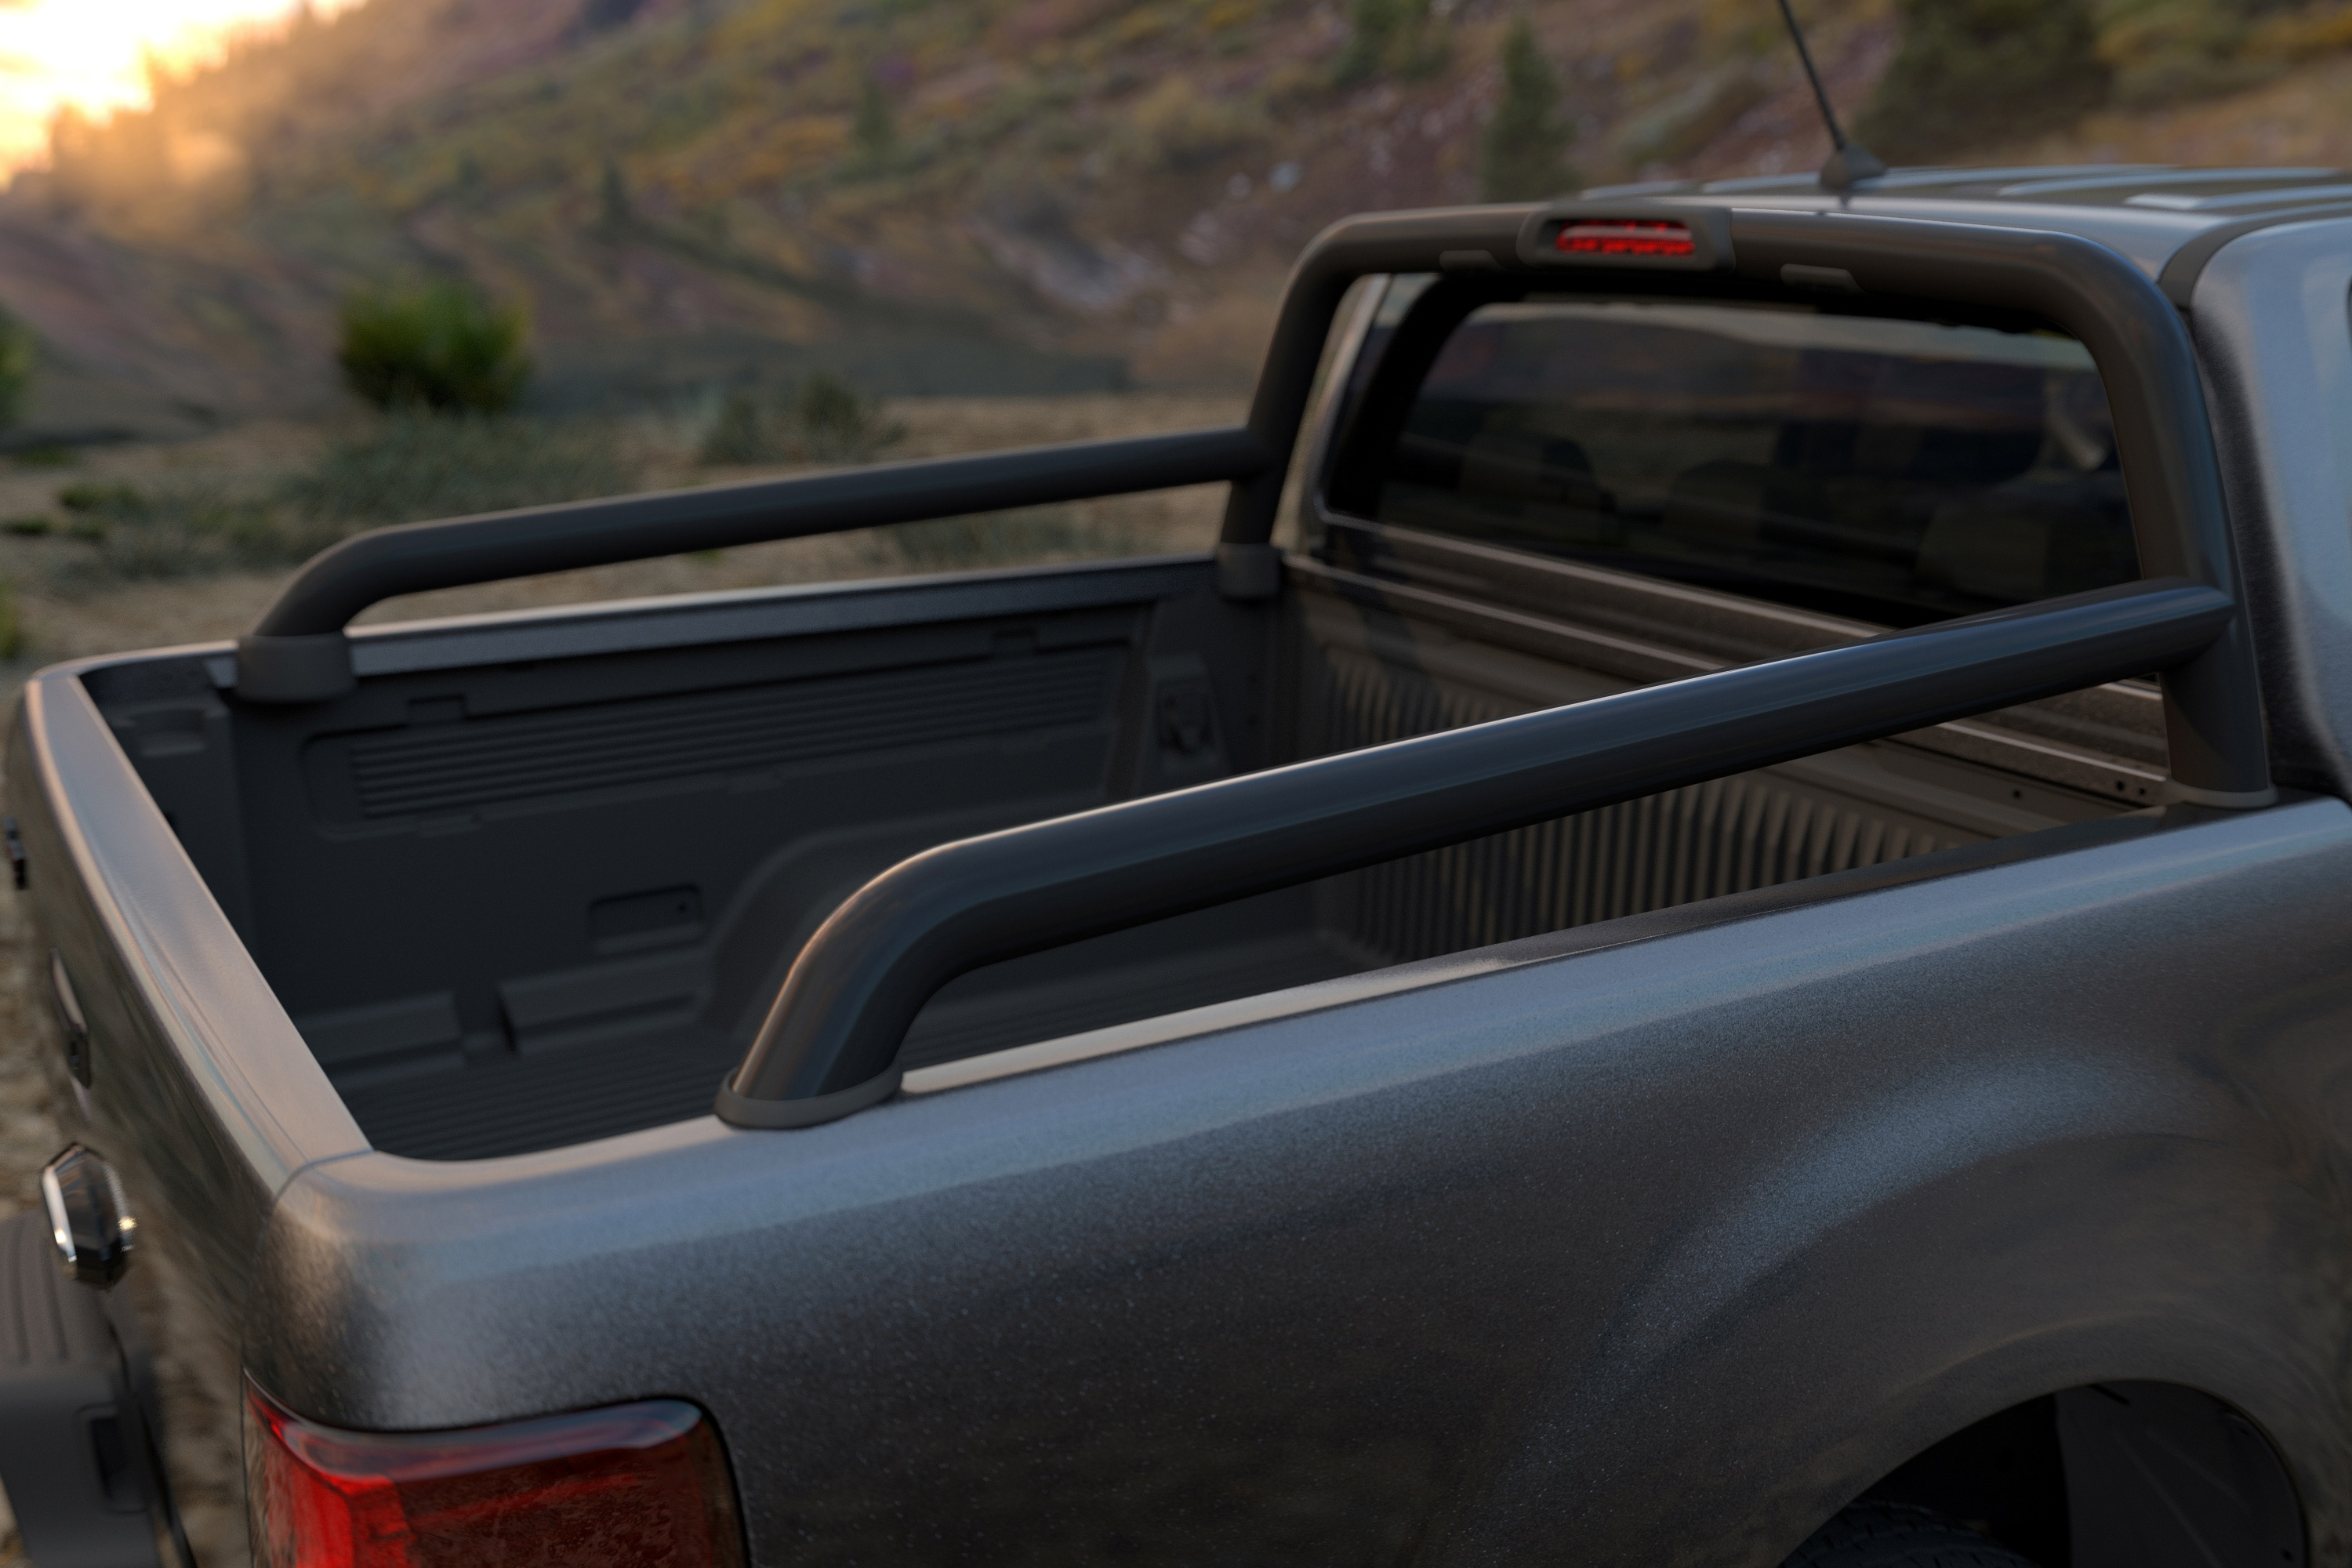 Ford Ranger FX4 Special Edition tray